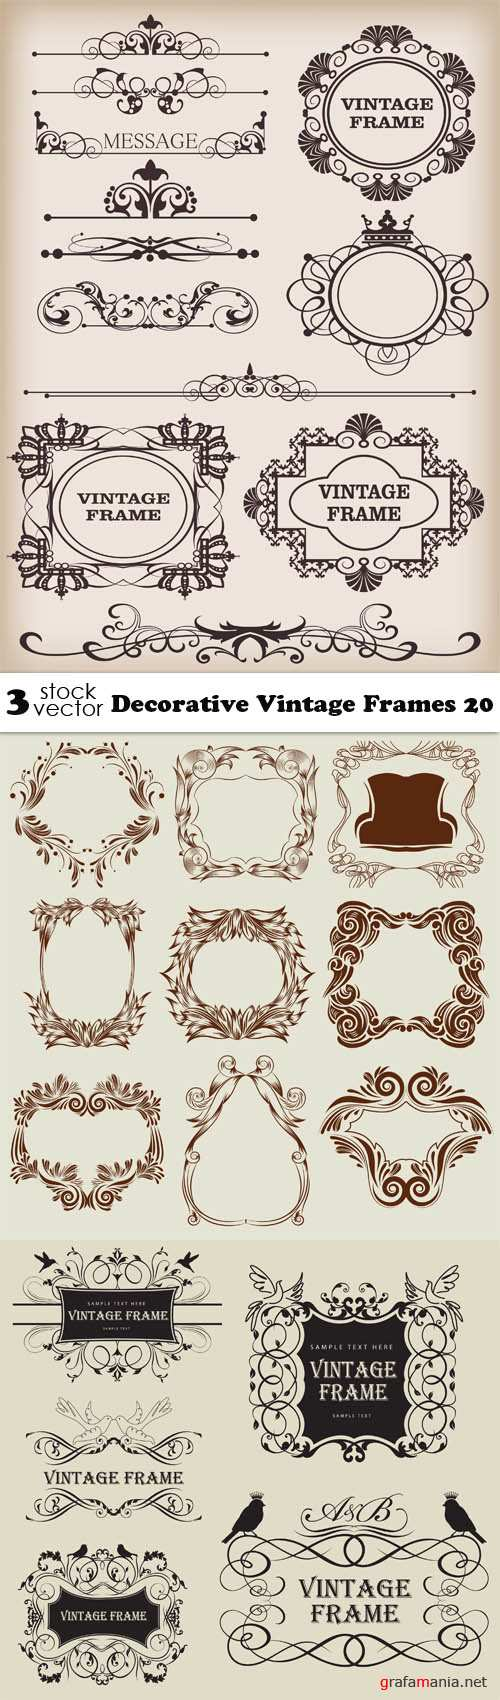 Vectors - Decorative Vintage Frames 20